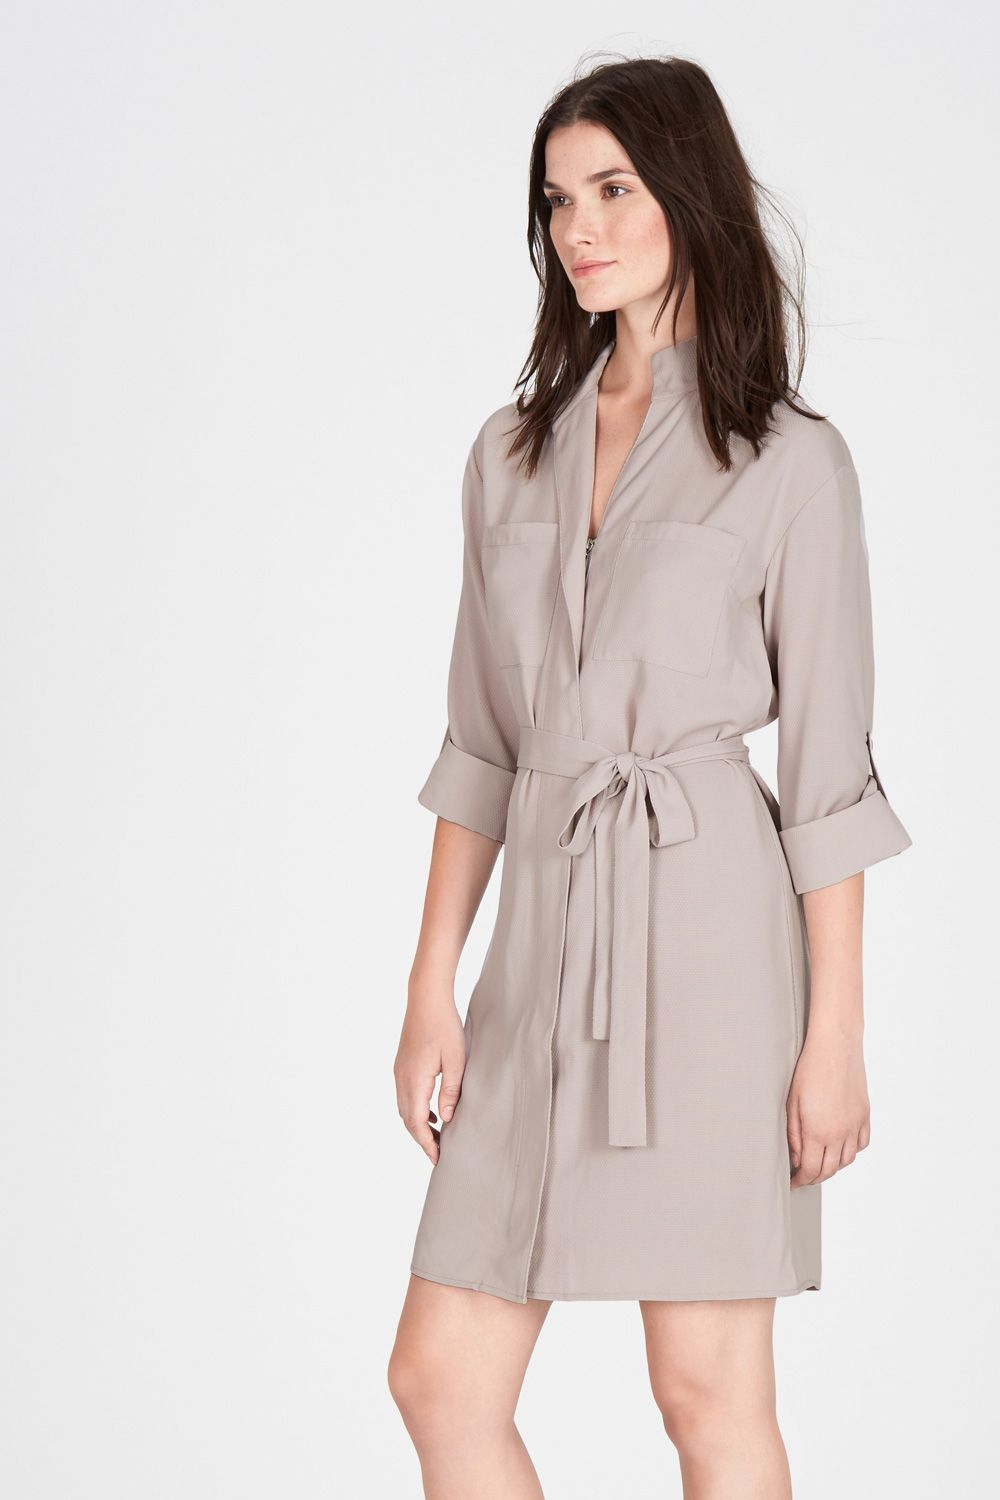 Dresses | Grey ZIP FRONT SHIRT DRESS | Warehouse